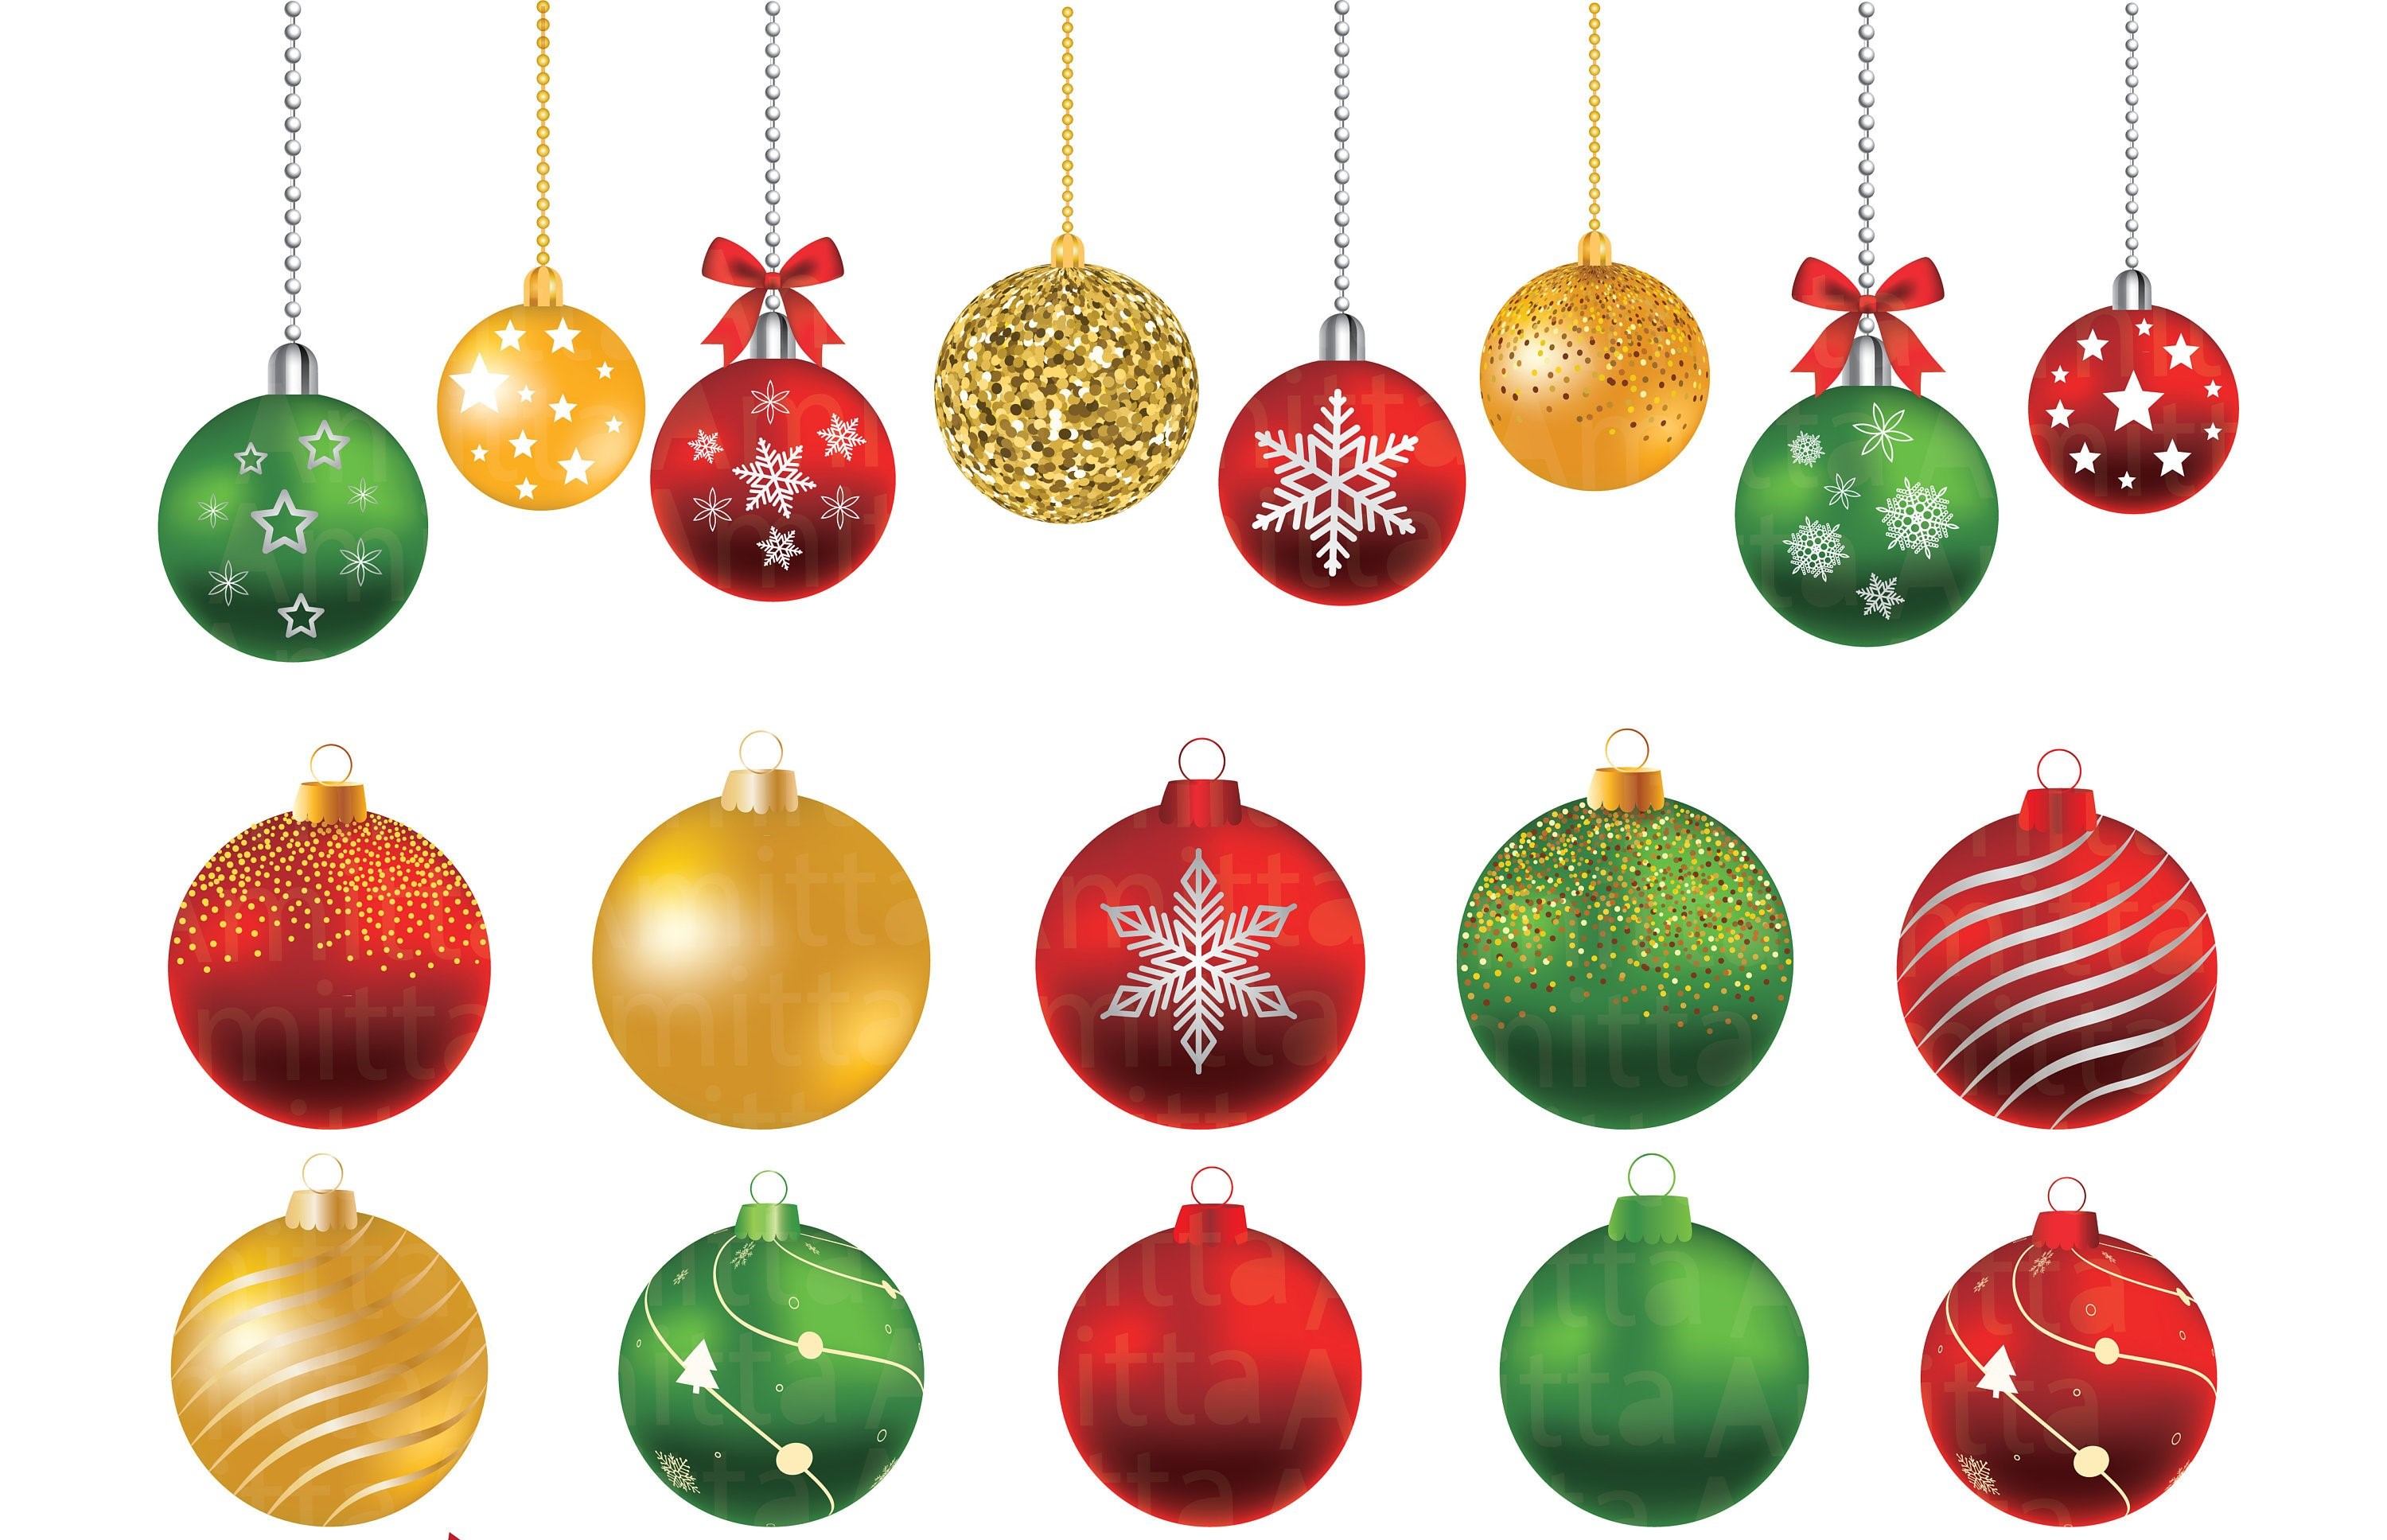 Gold christmas ornaments clipart graphic freeuse Christmas balls Clipart set - Christmas Ornaments Clipart graphic freeuse